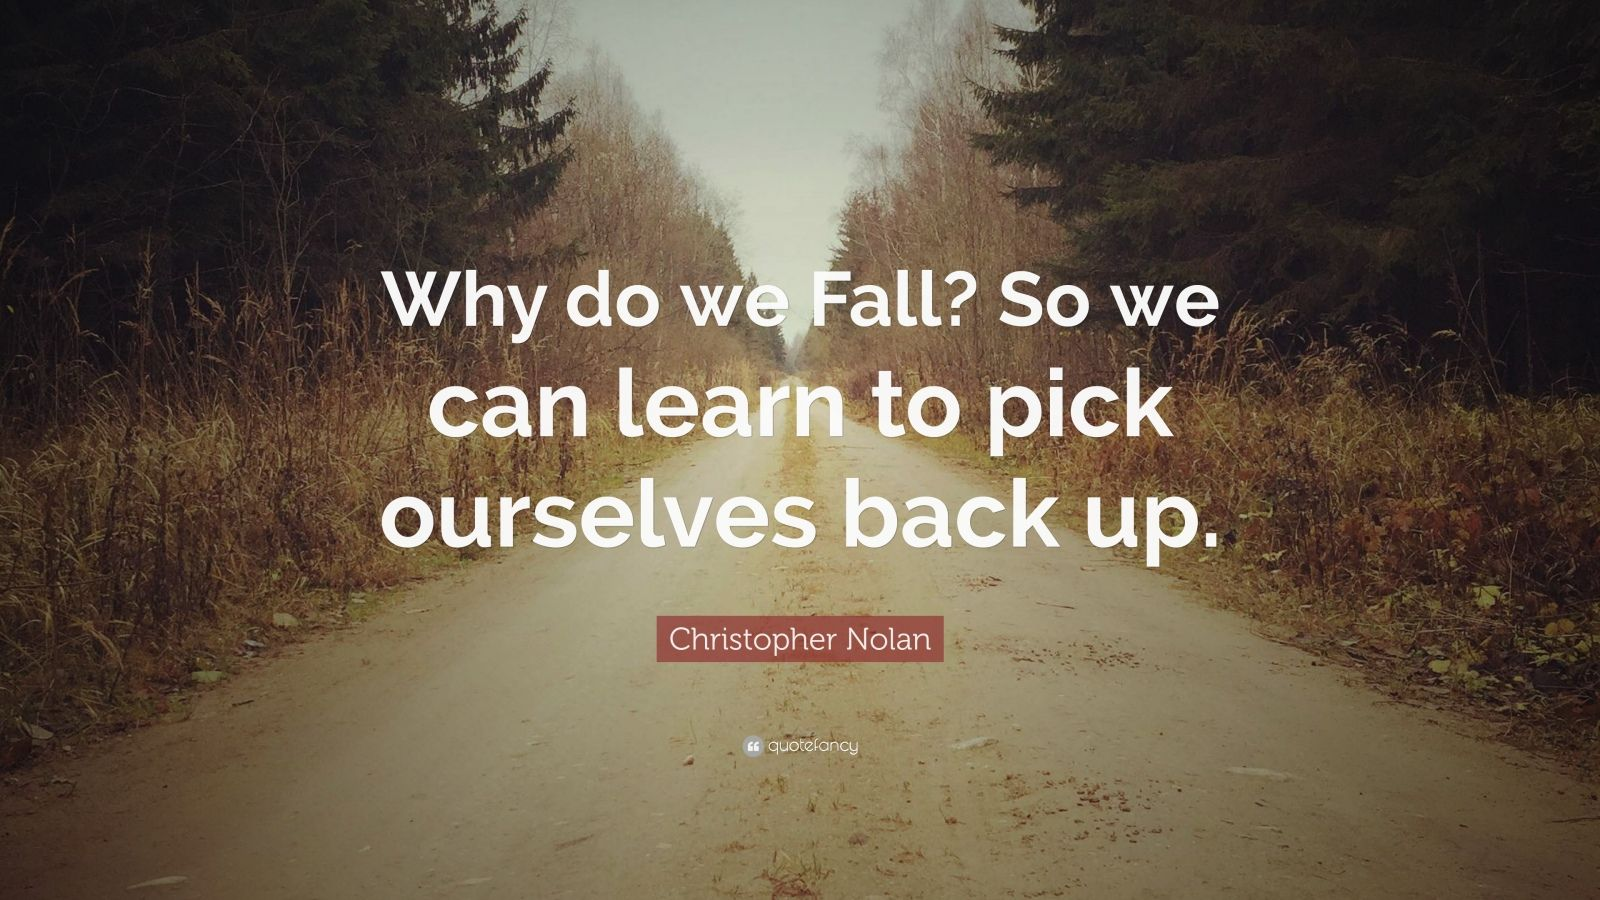 Why Do We Fall Wallpaper Christopher Nolan Quote Why Do We Fall So We Can Learn